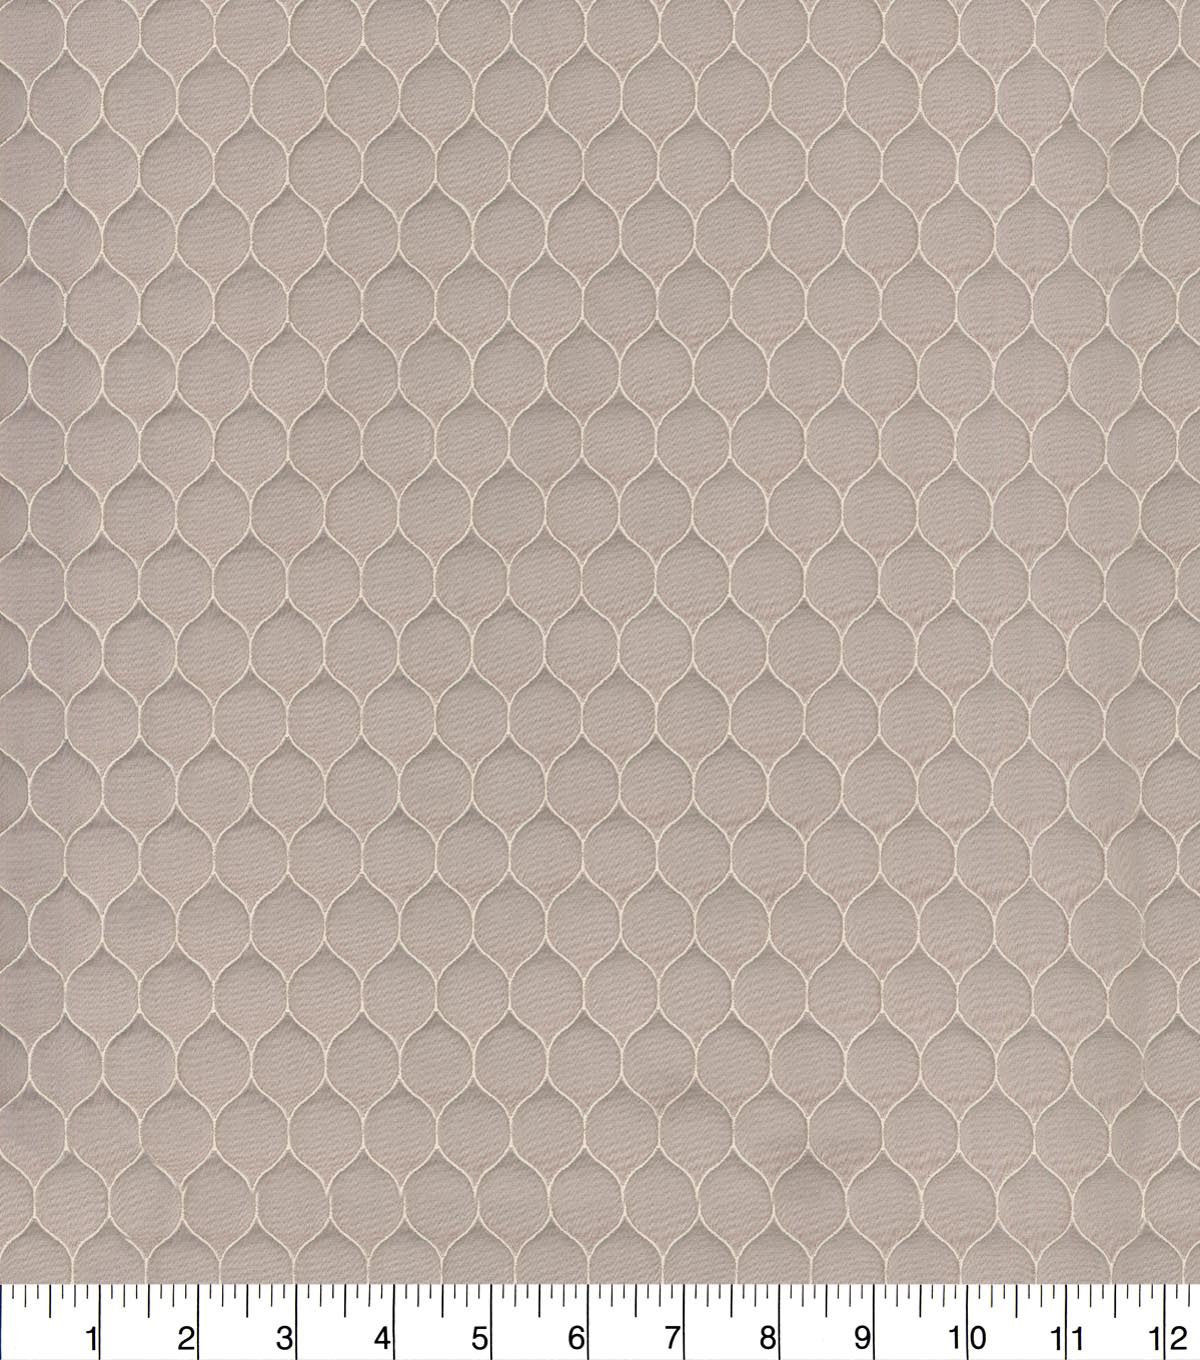 Home Decor 8\u0022x8\u0022 Fabric Swatch-P/K Lifestyles Mermaid Driftwood